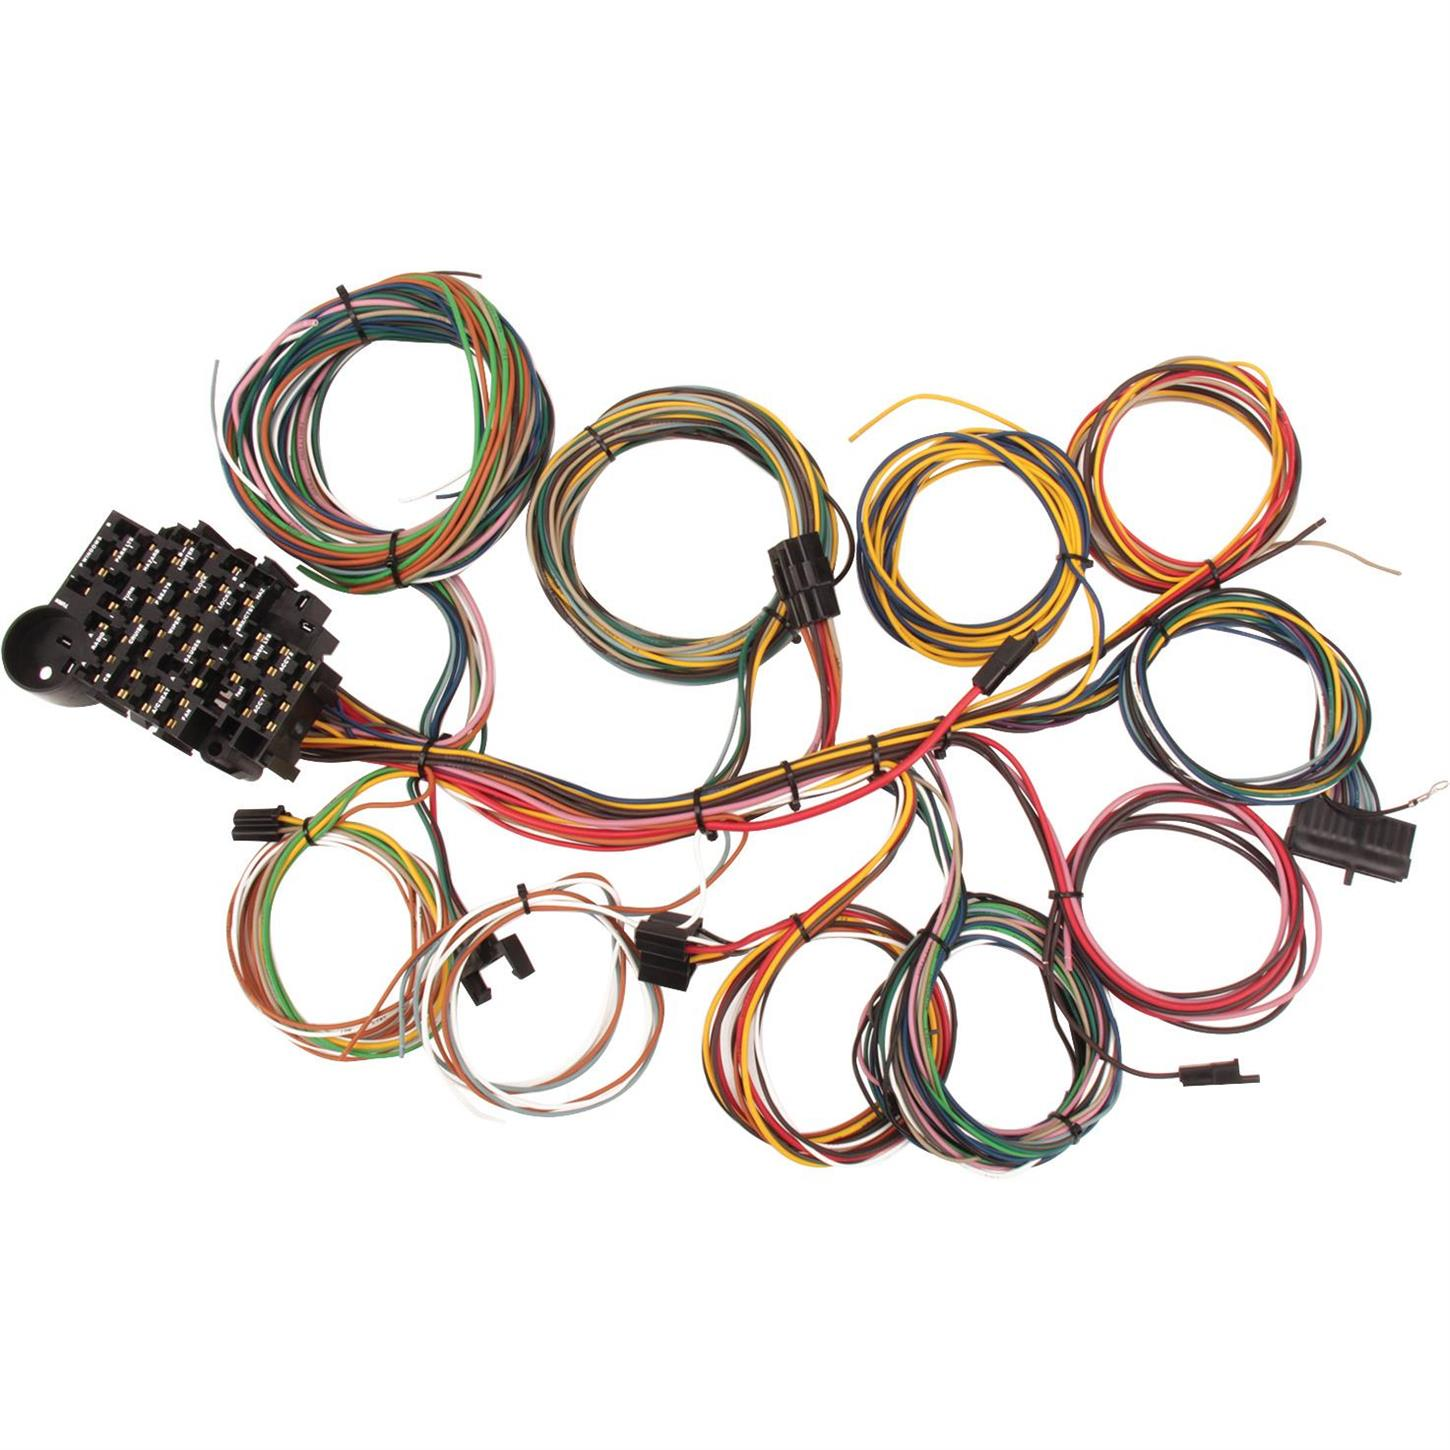 91064022_L1450_4a5a9e43 cdd2 4b2c 9c68 457f296054bd selecting a wiring harness for your street rod  at mifinder.co